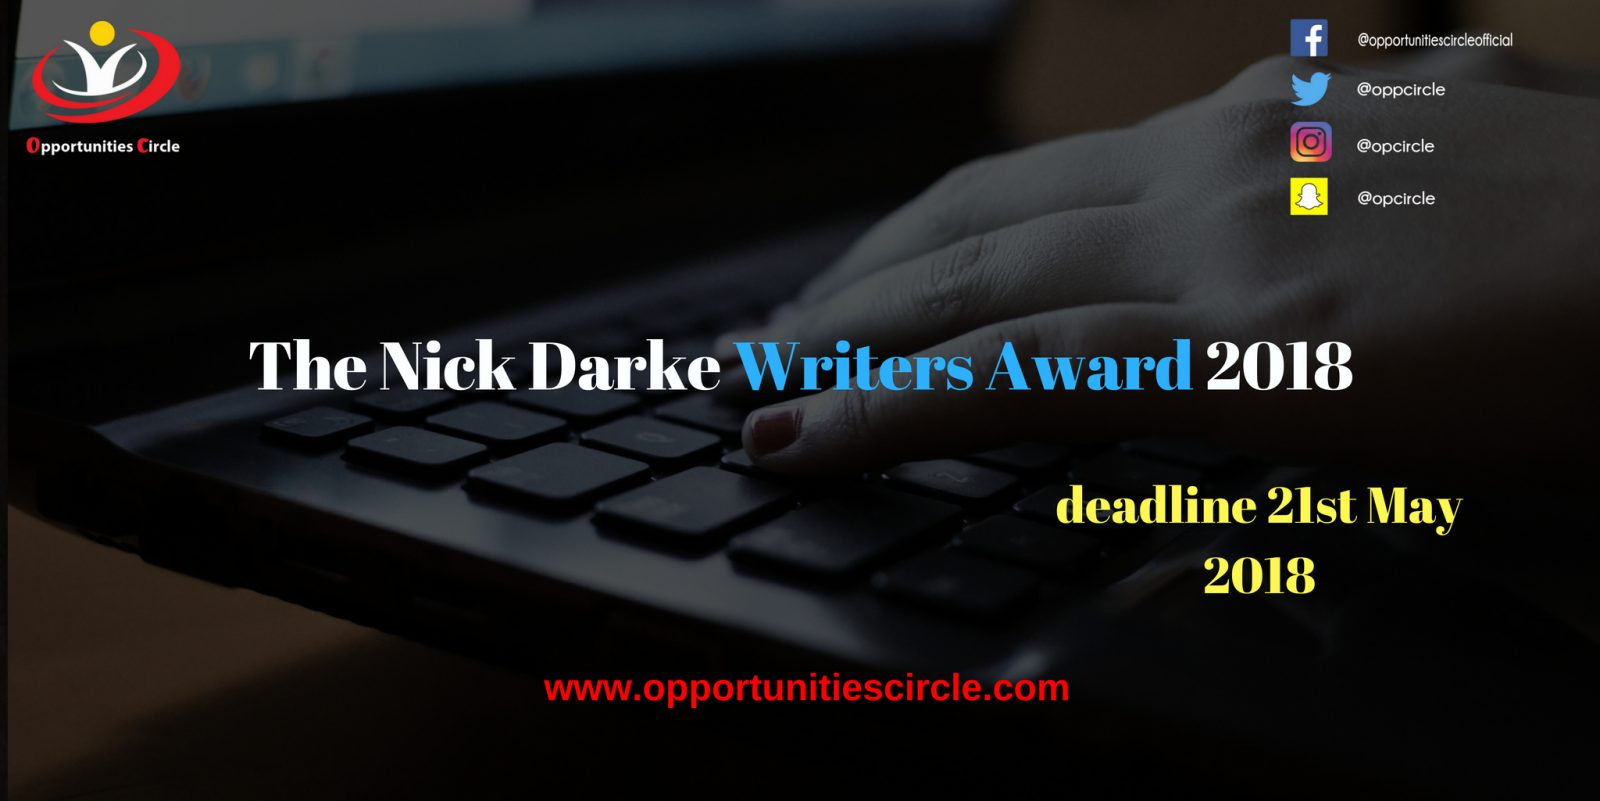 The Nick Darke Writers Award 2018 - The Nick Darke Writers Award 2018